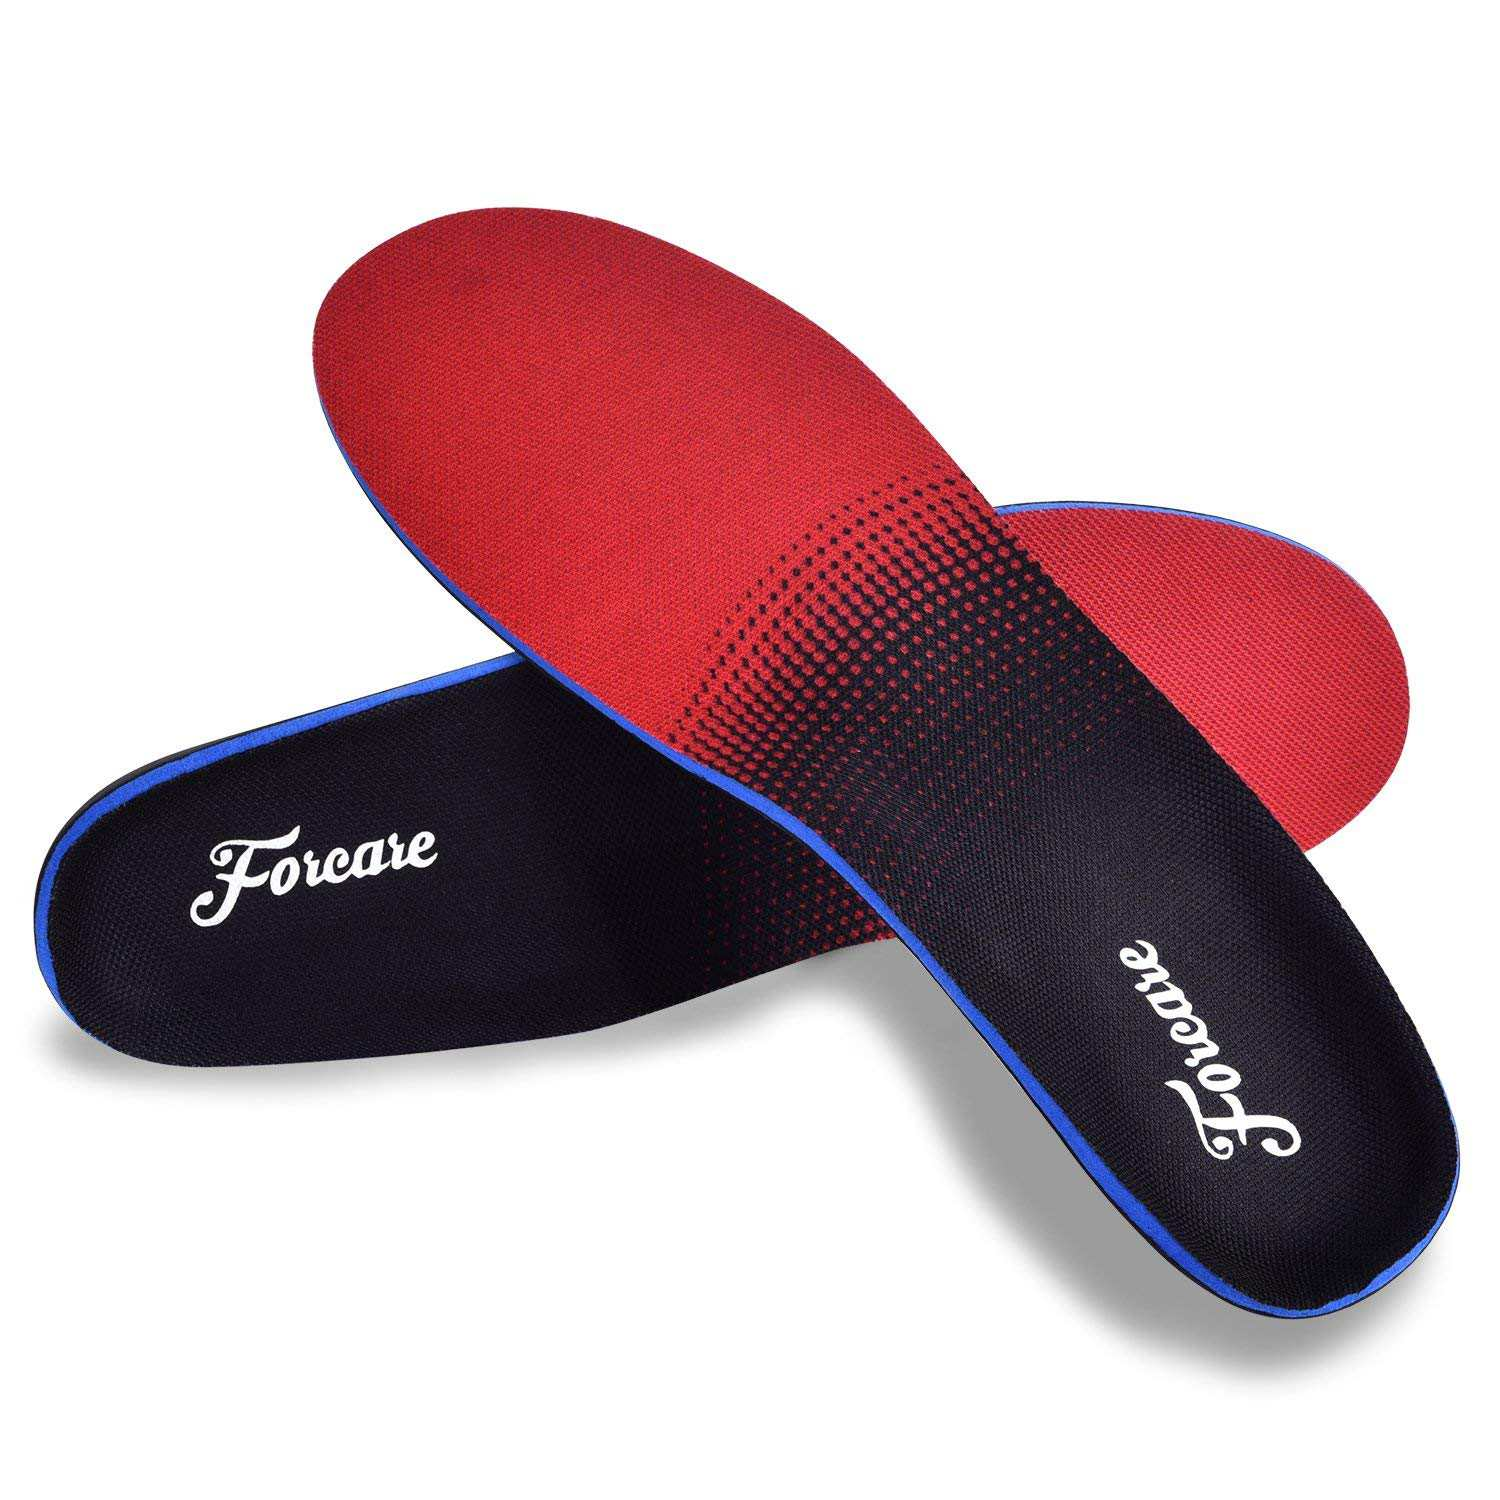 4b11d66b14d1 Best Overall  Forcare Plantar Fasciitis Insoles for Men and Women